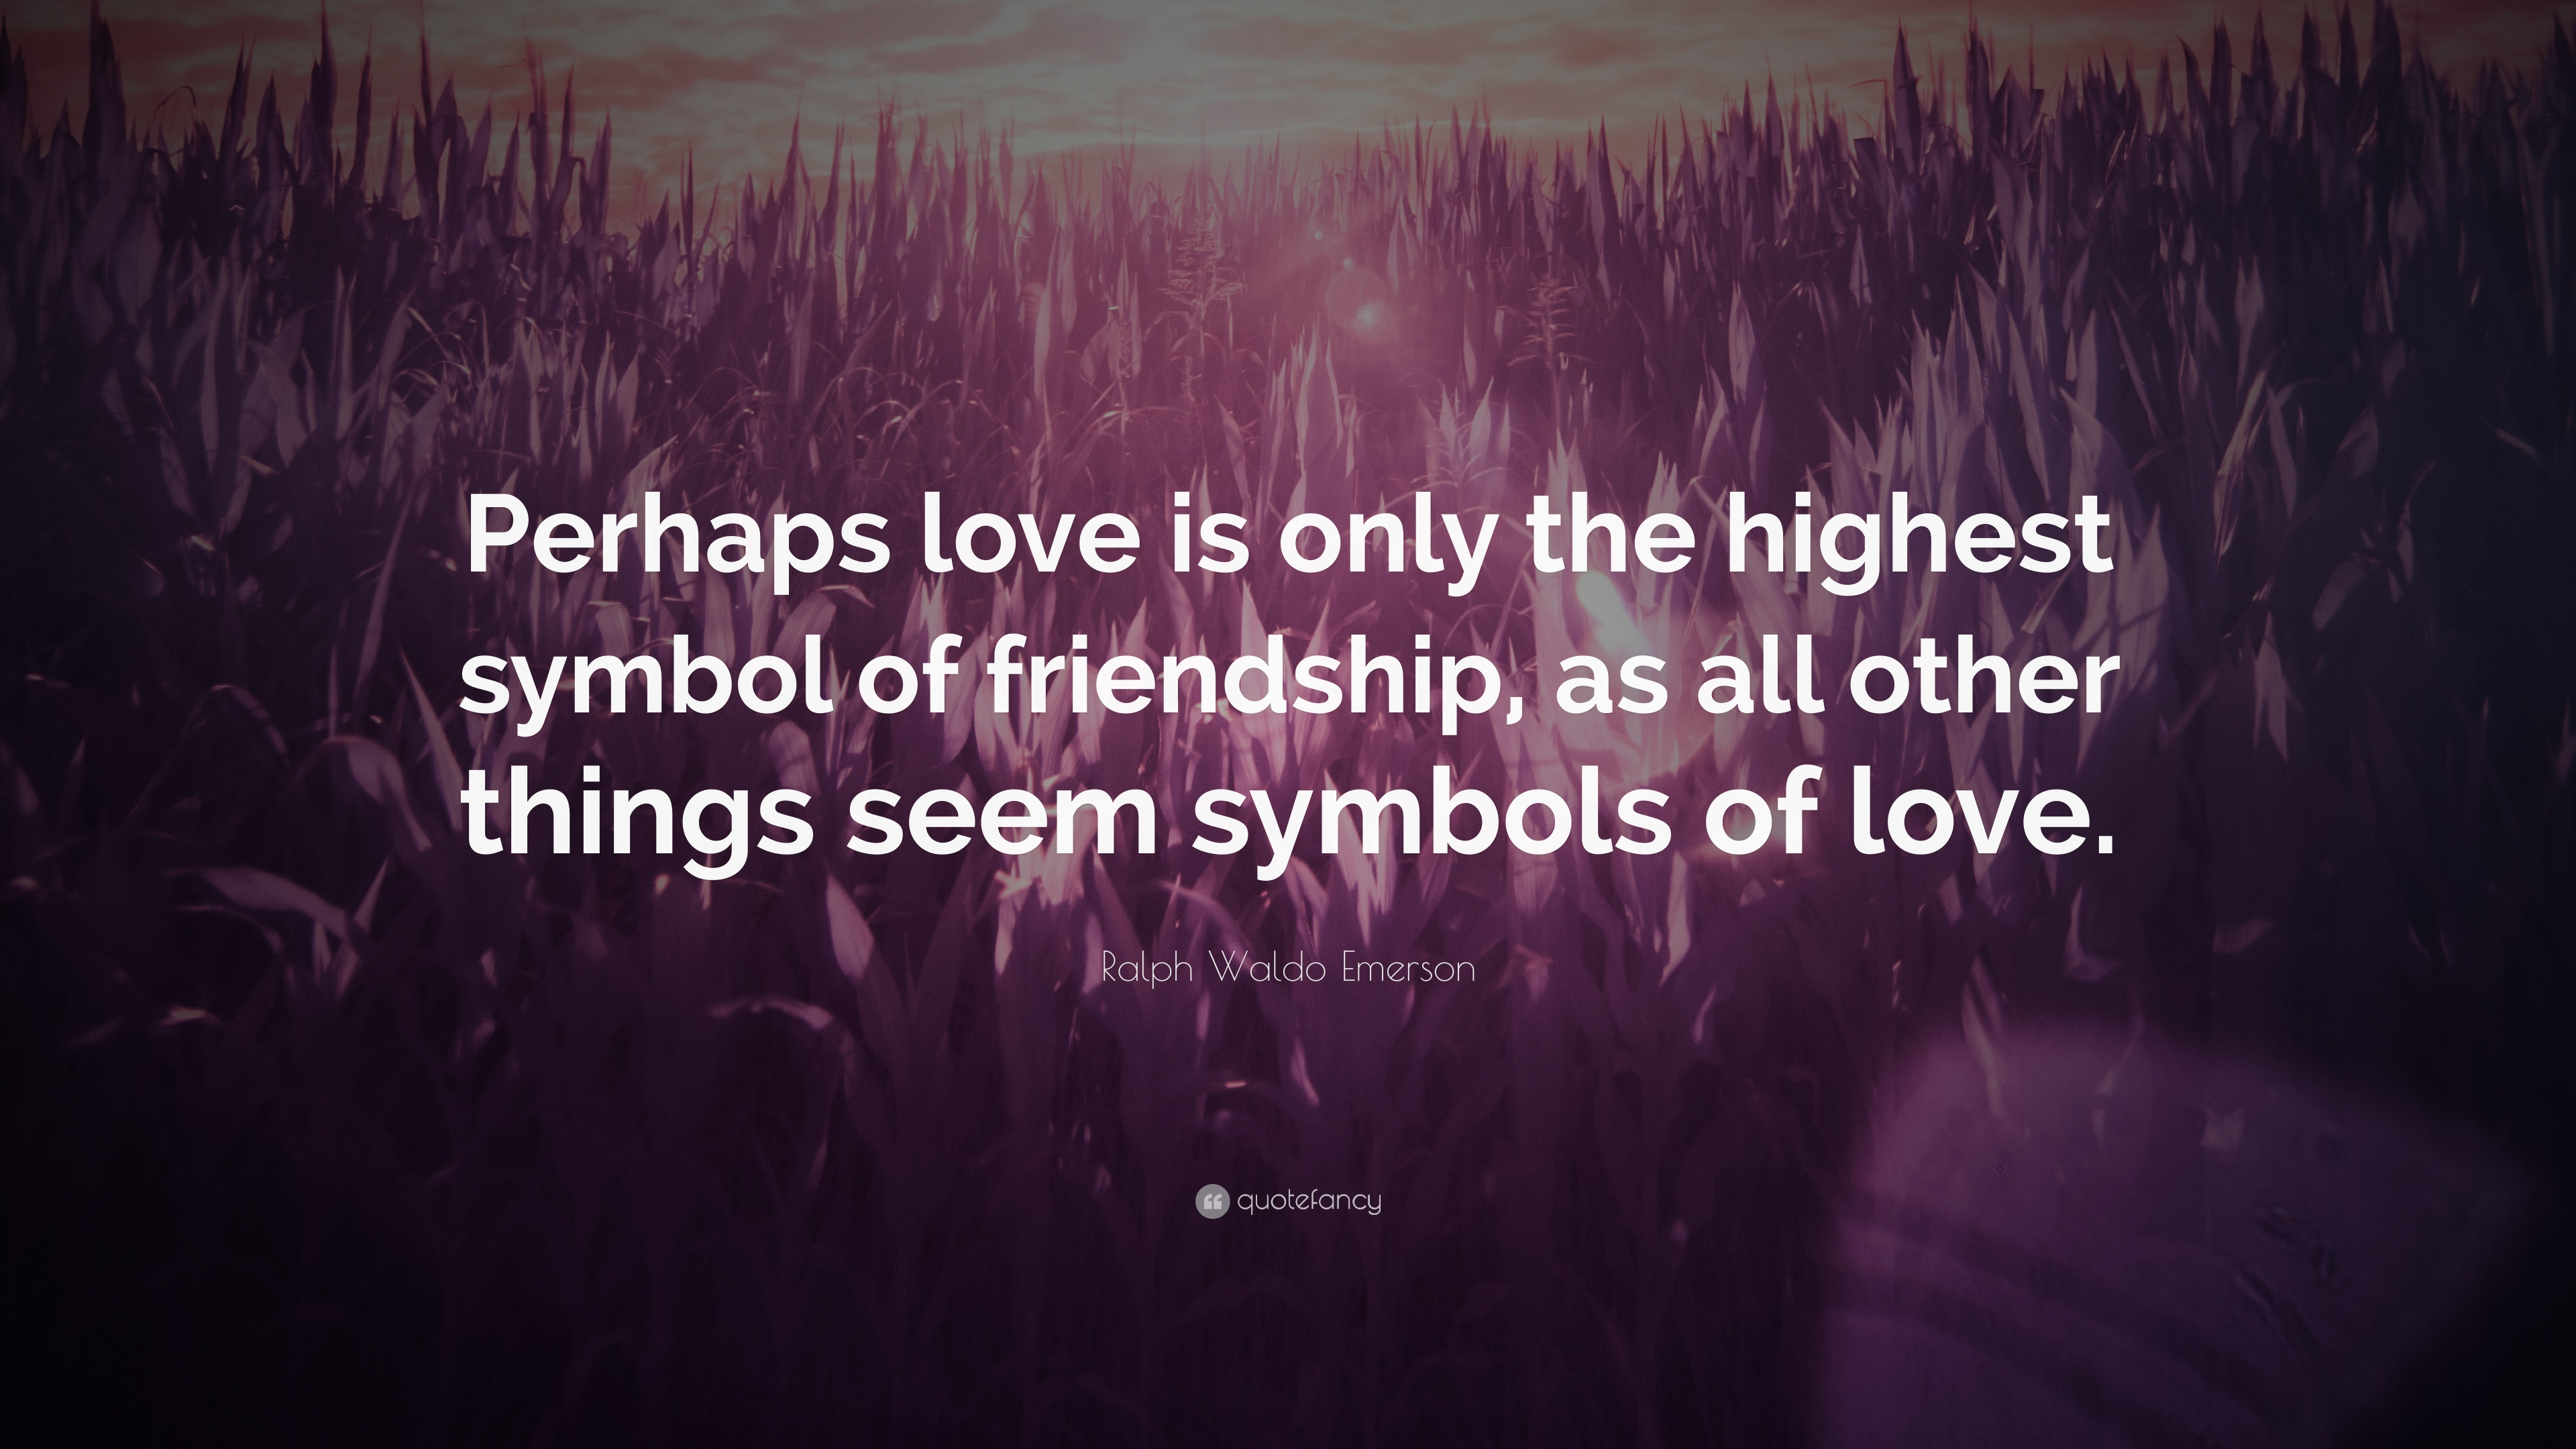 Ralph Waldo Emerson Quote Perhaps Love Is Only The Highest Symbol